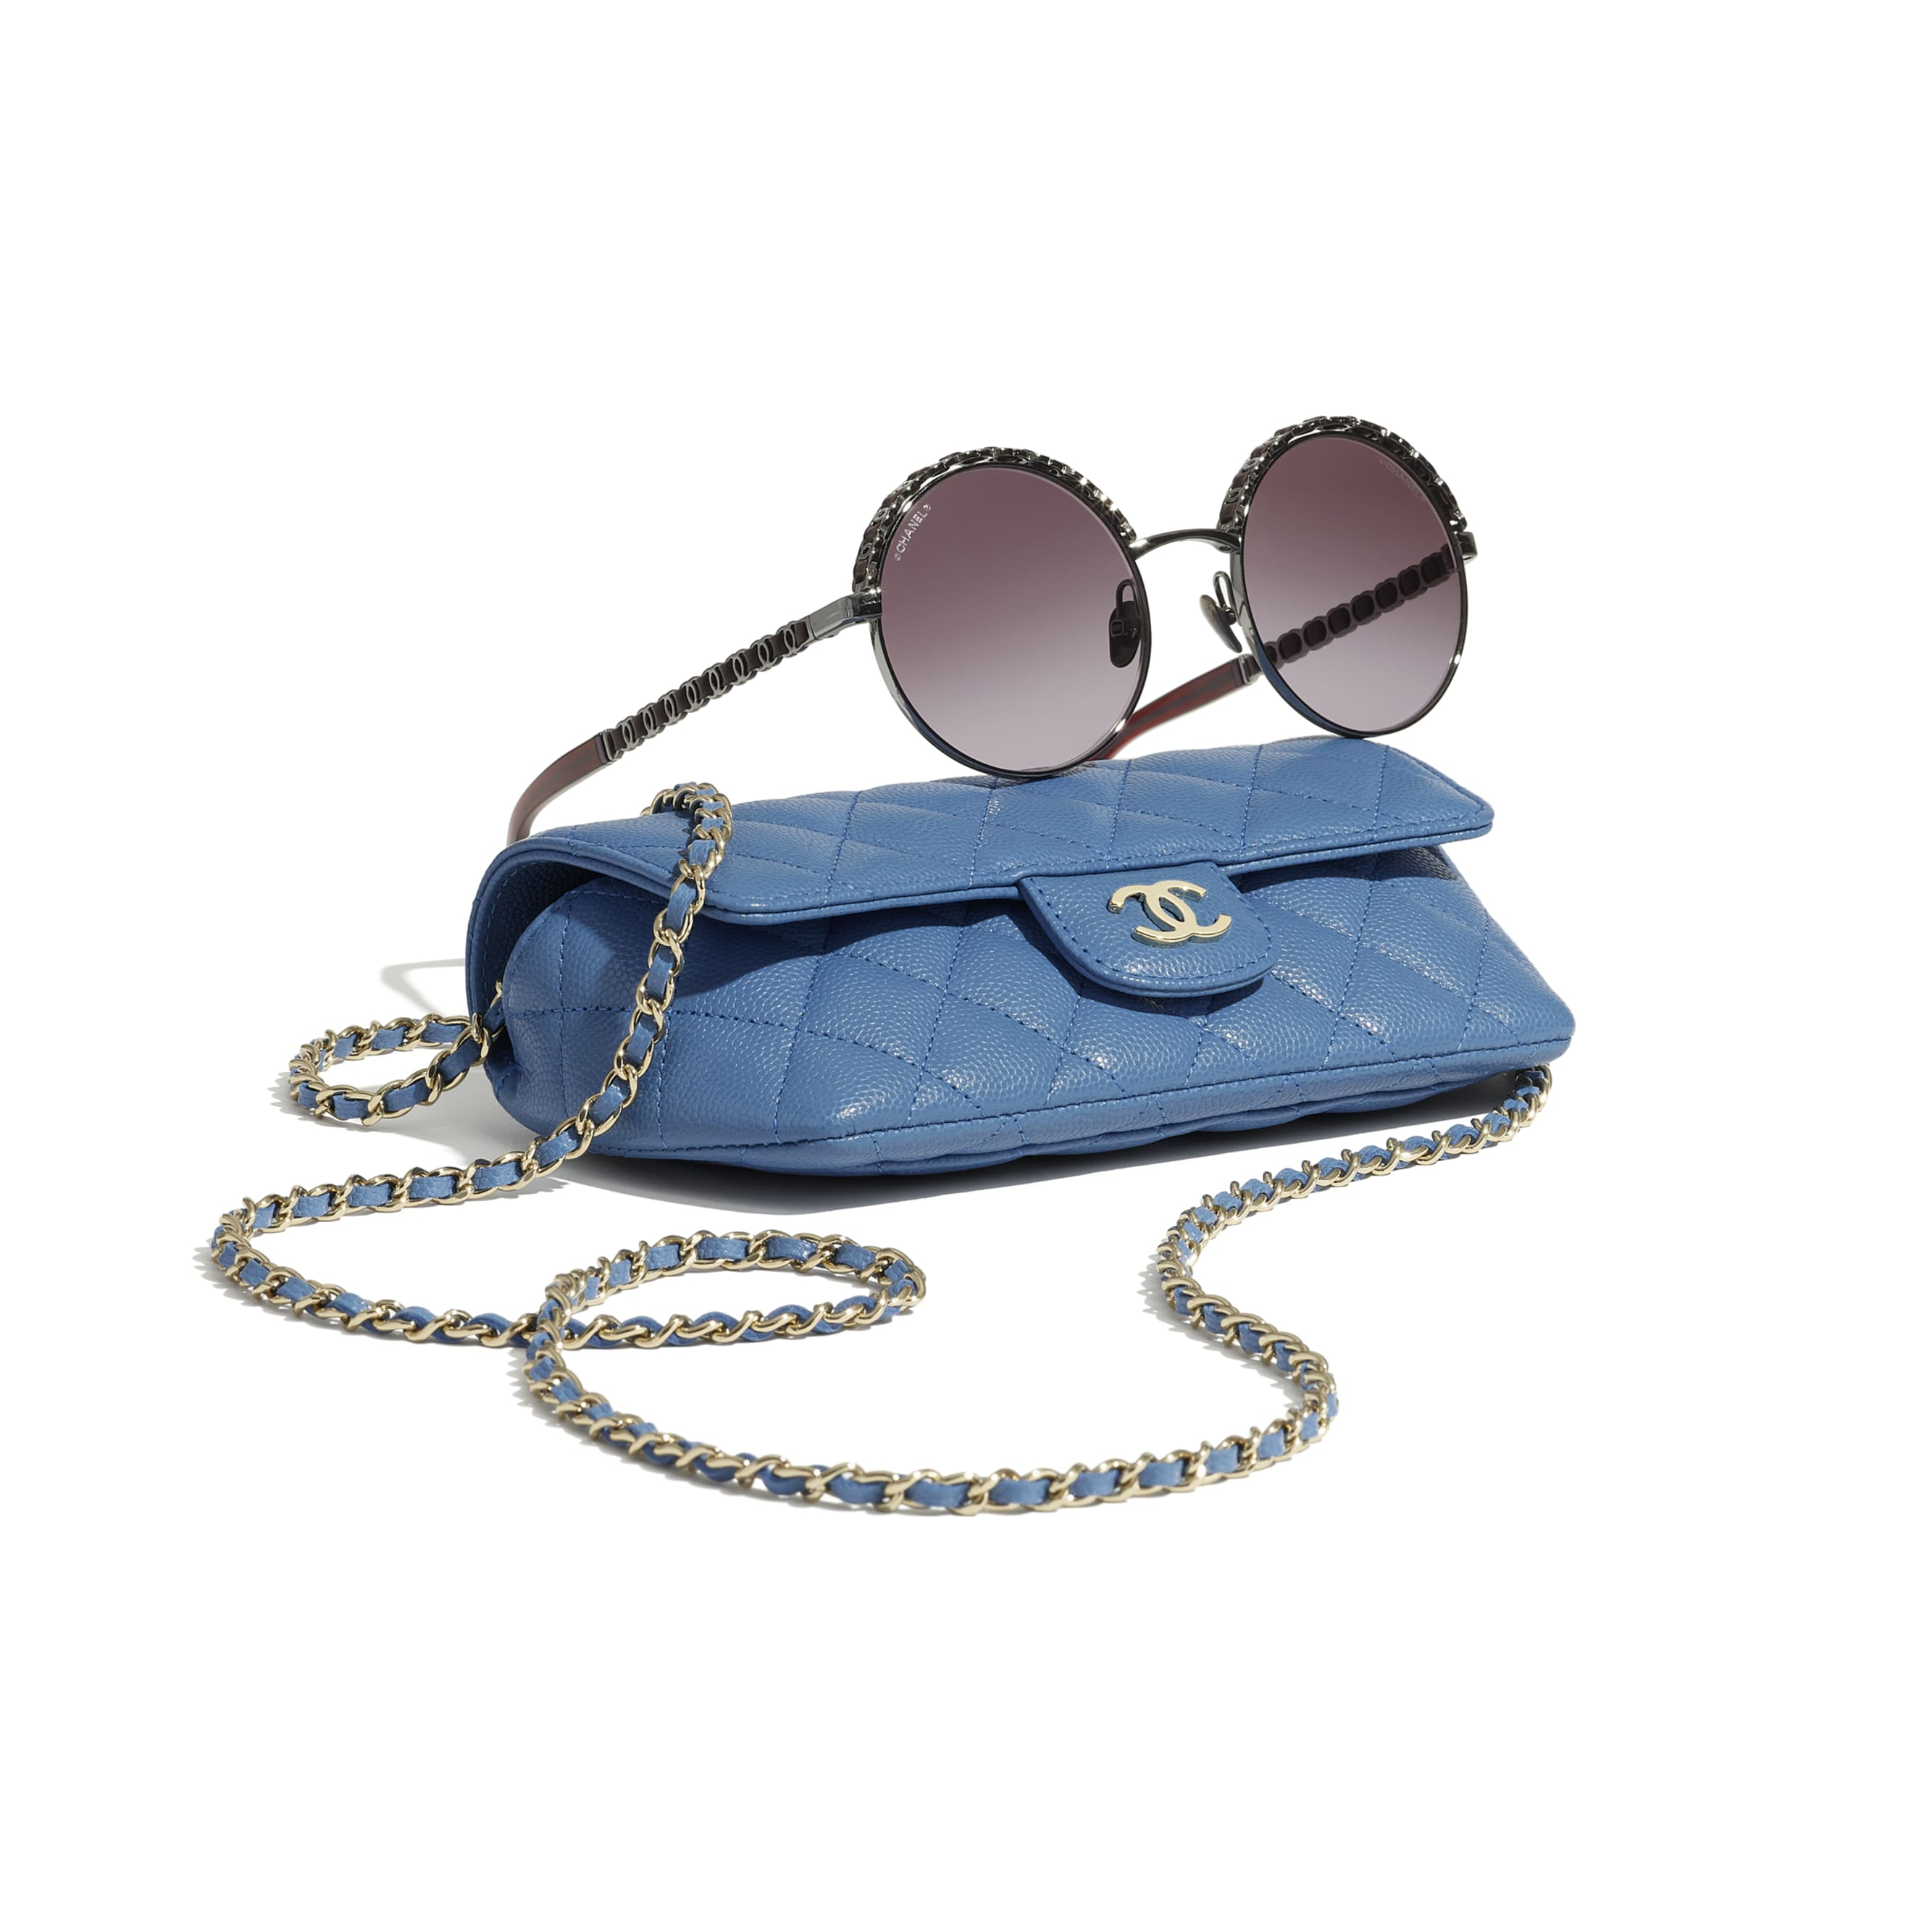 Glasses Case with Classic Chain - Blue - Grained Calfskin & Gold-Tone Metal - CHANEL - Extra view - see standard sized version